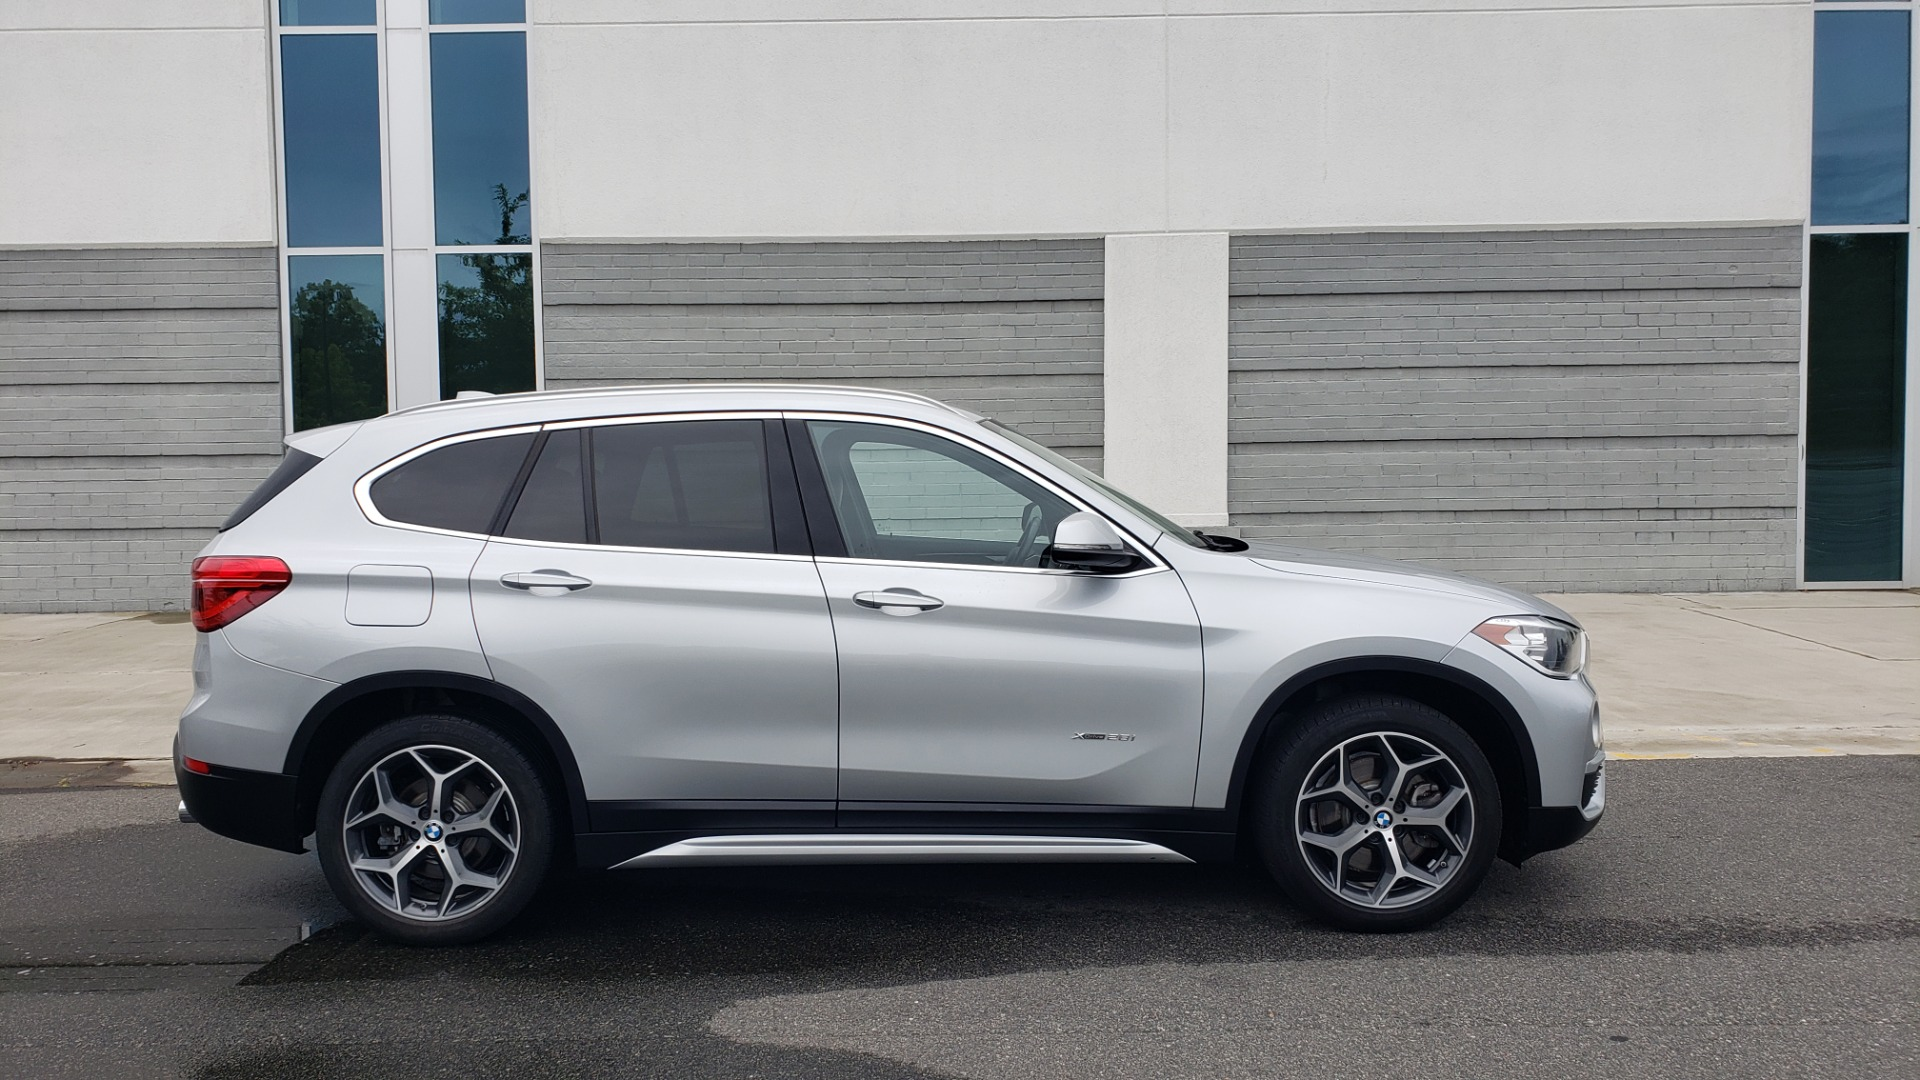 Used 2018 BMW X1 XDRIVE38I / NAV / CONV PKG / PANO-ROOF / HTD STS / REARVIEW for sale $28,995 at Formula Imports in Charlotte NC 28227 9